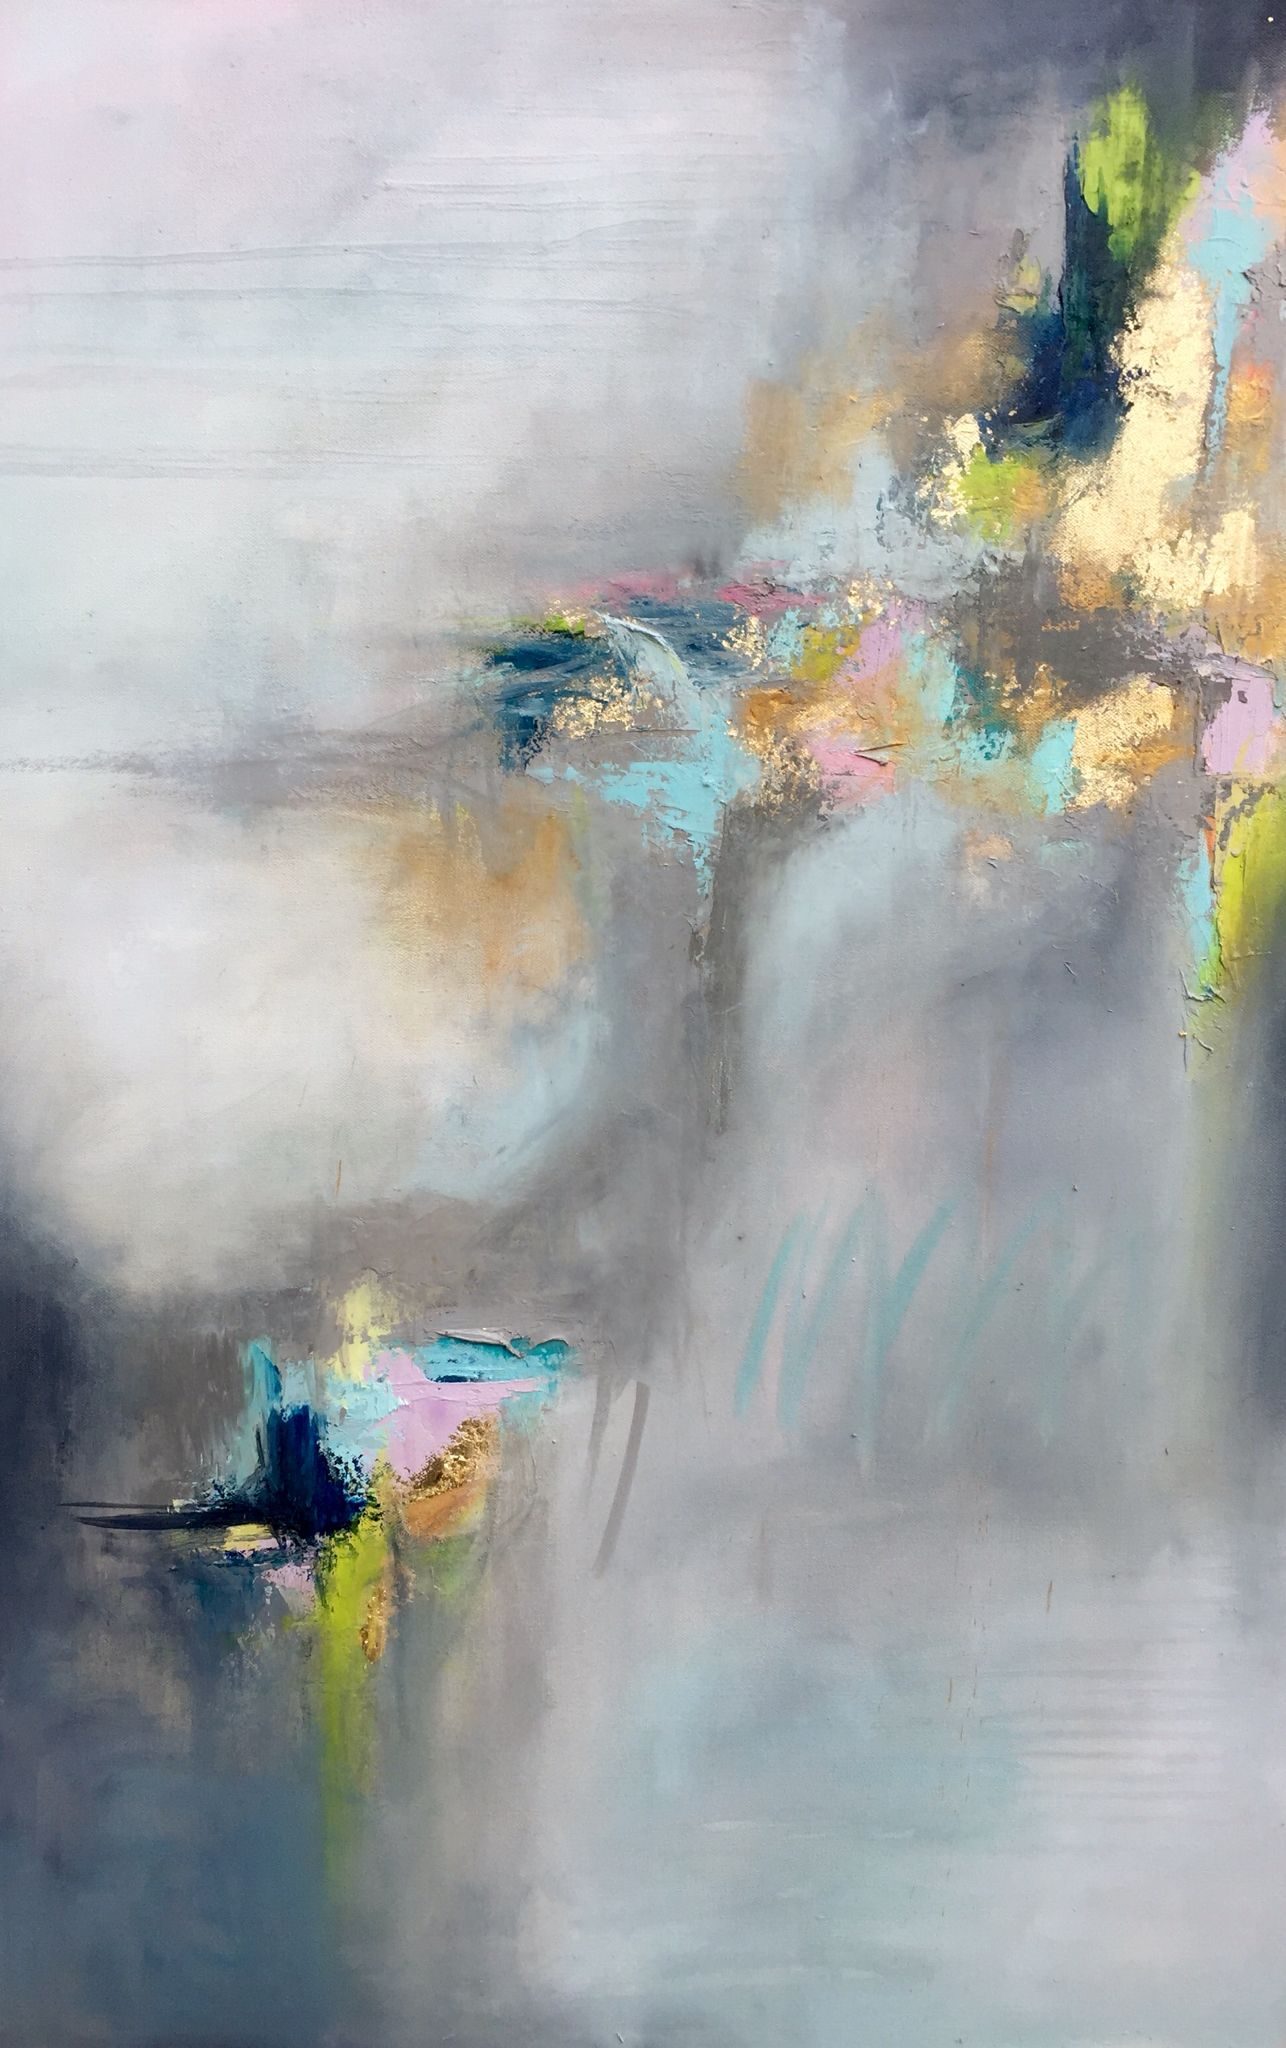 Abstract painting by Blaire Wheeler www.blairewheelerart